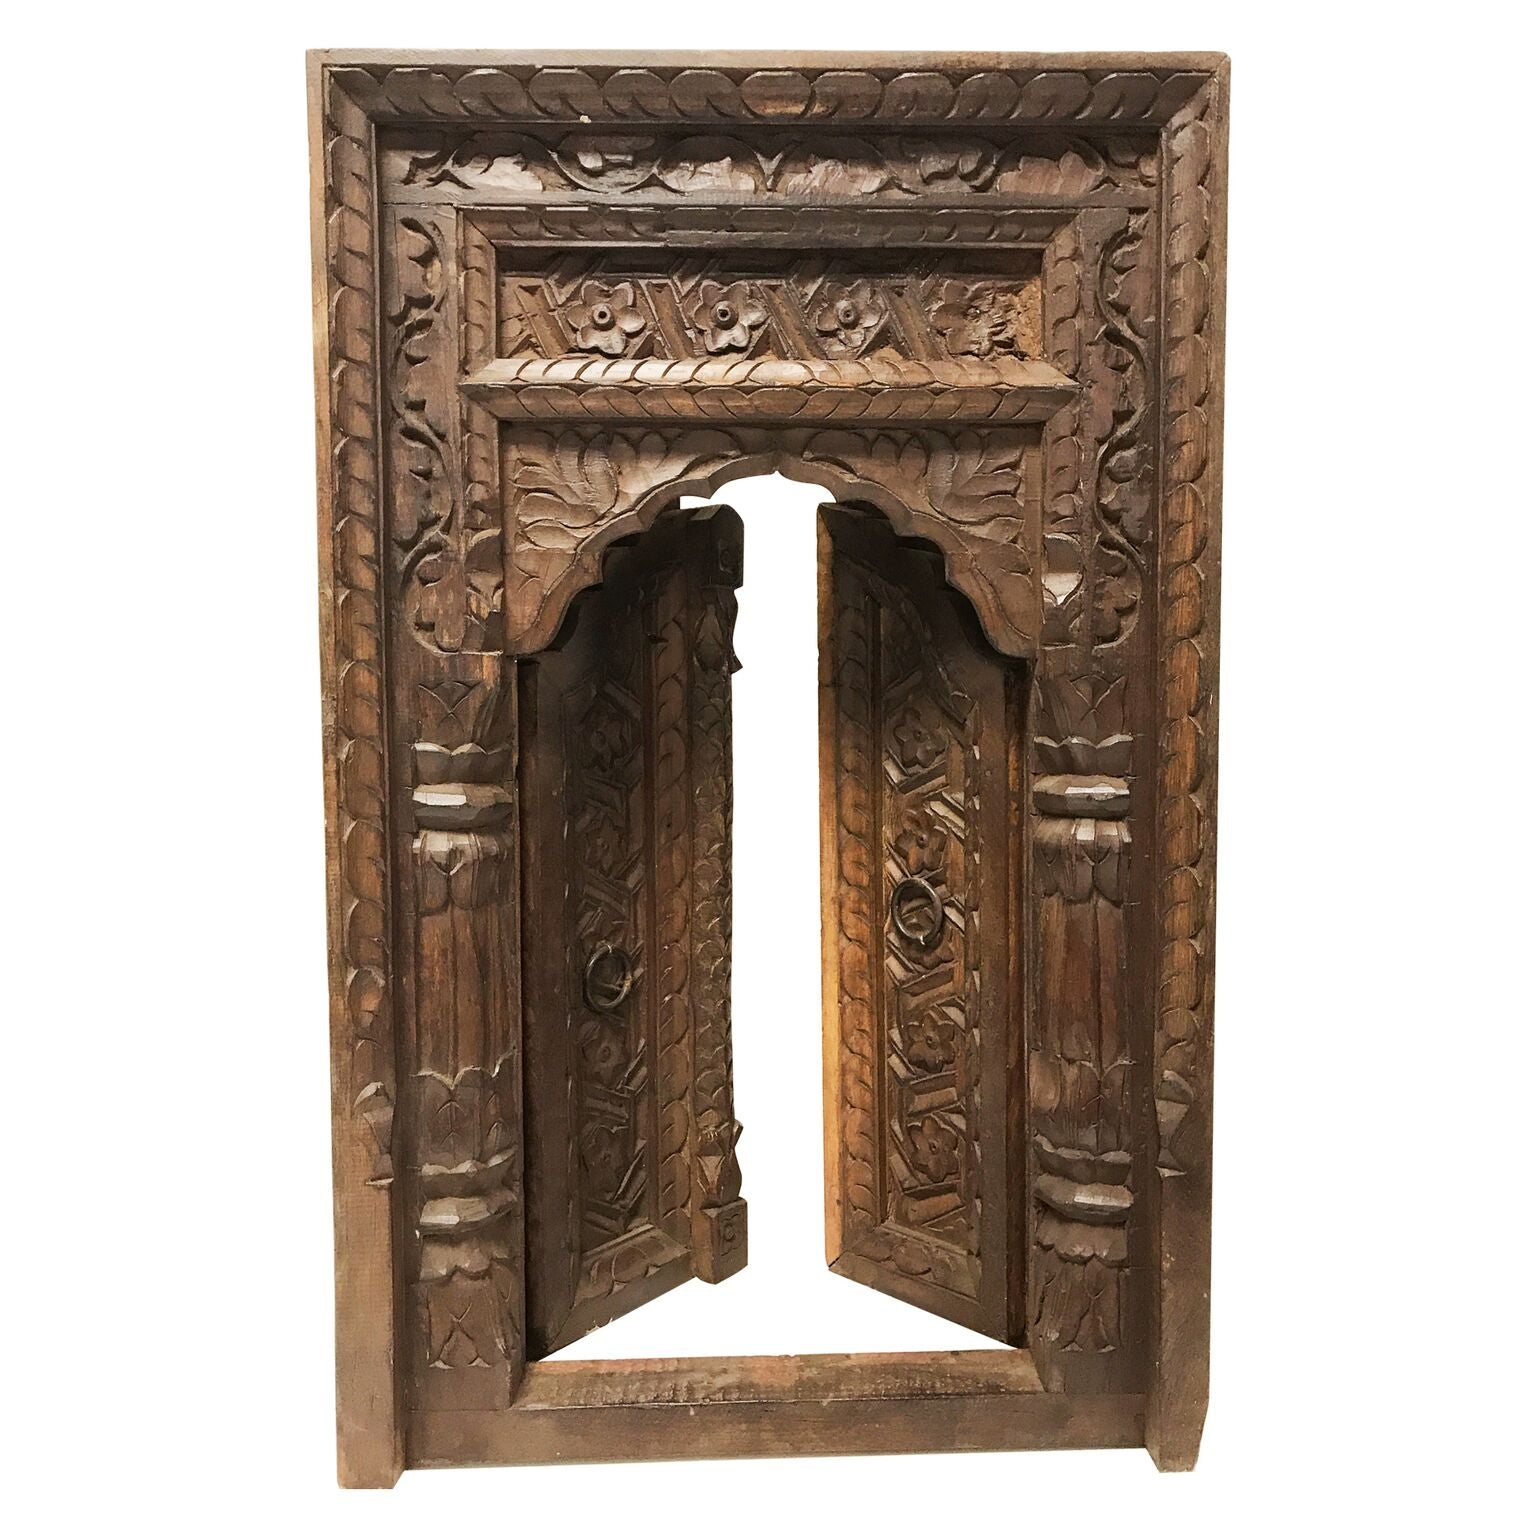 Intricate Wooden Door Arch Frame for Mounting | Bai's Home Decor on